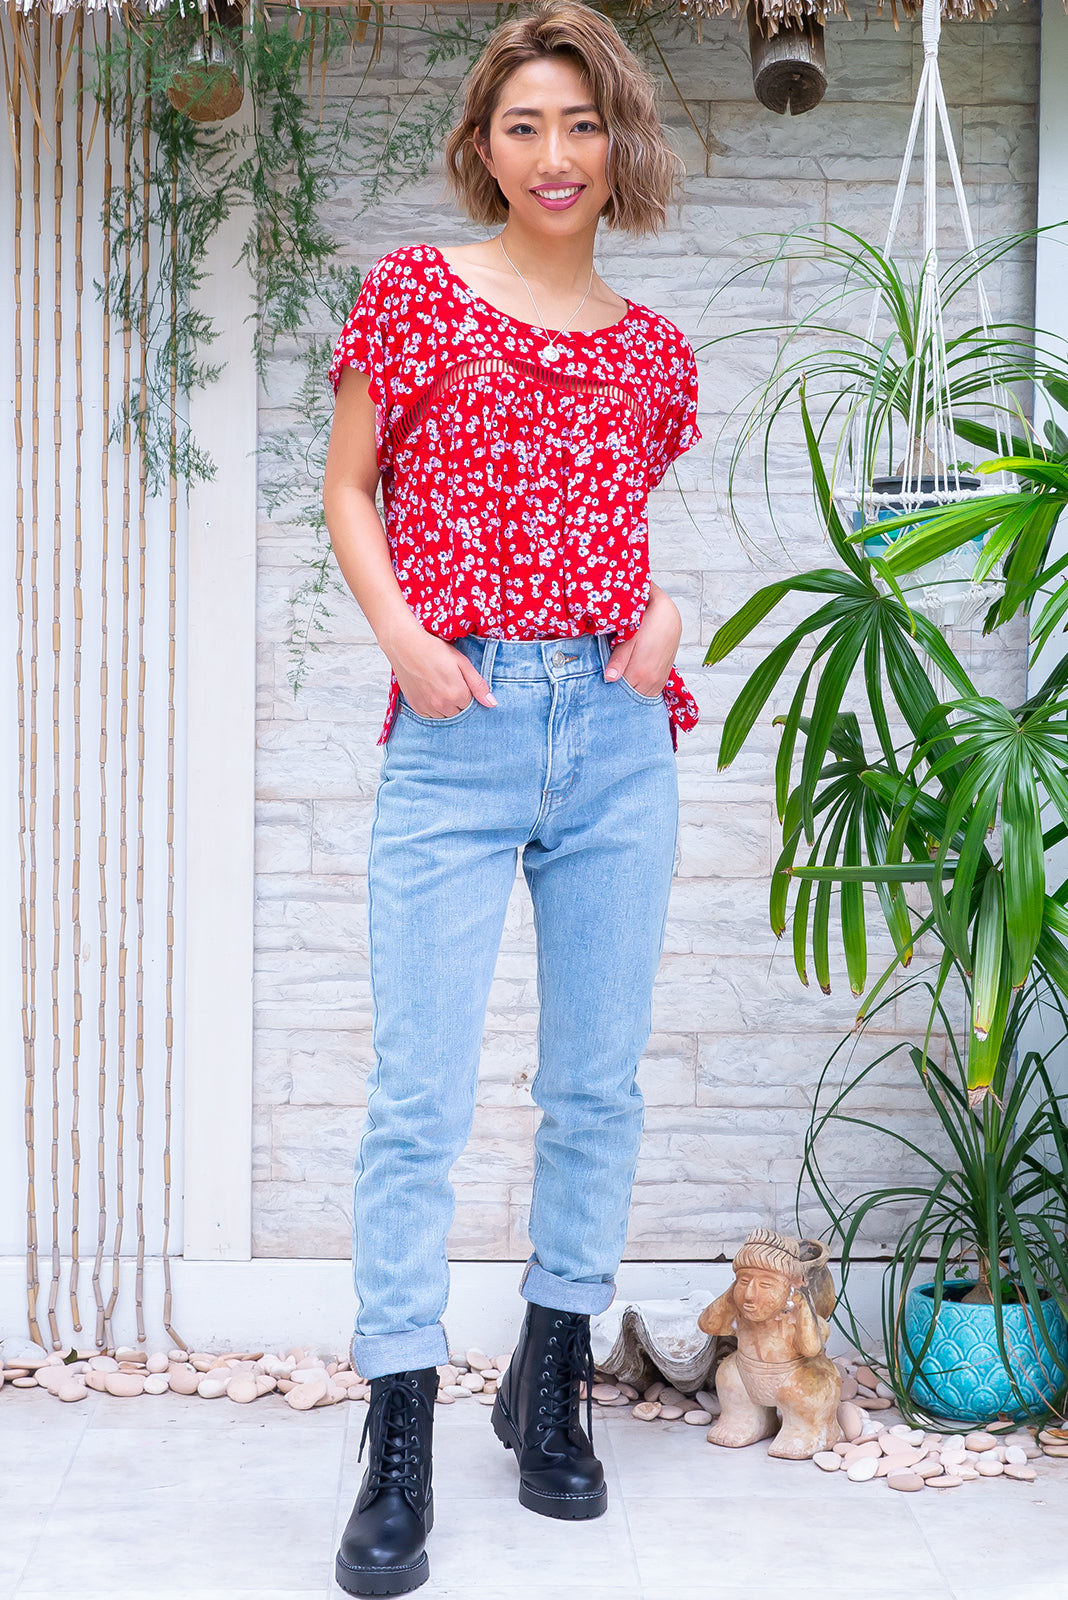 The Day Tripper Real Red Top is an airy and comfortable 100% viscose top featuring red base with small flowers and has scooped neckline, lace insert across chest.